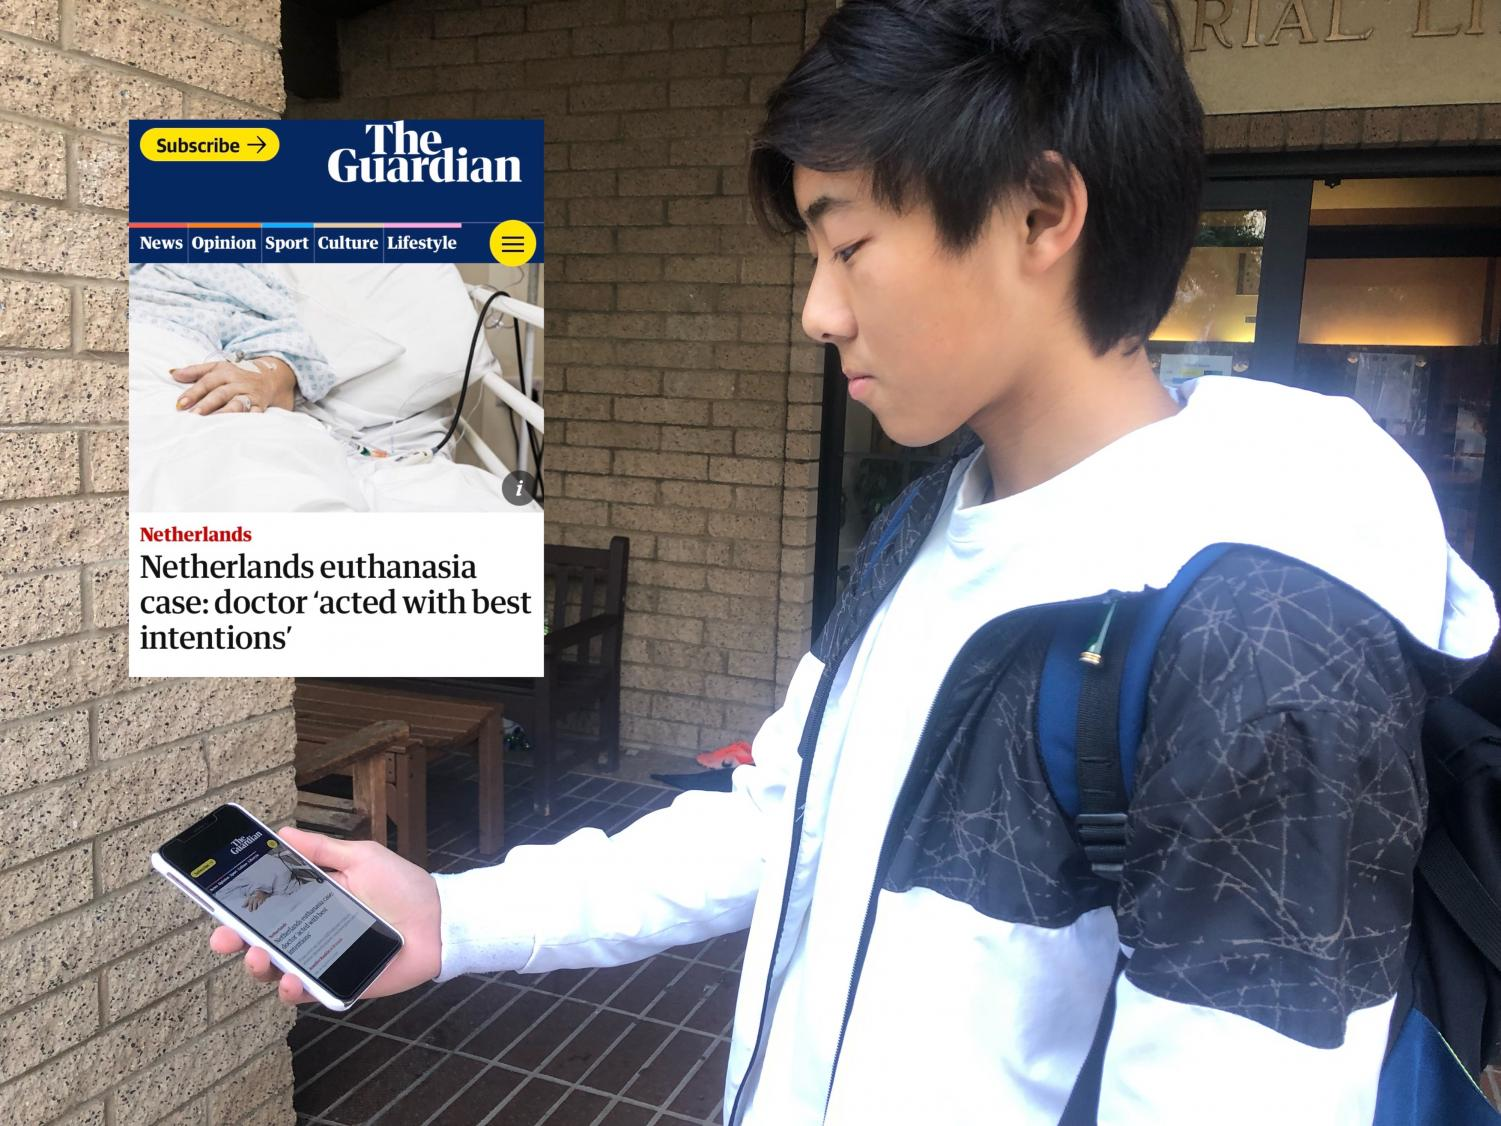 Winston Li ('21) reads an article on the euthanasia case in the Netherlands.